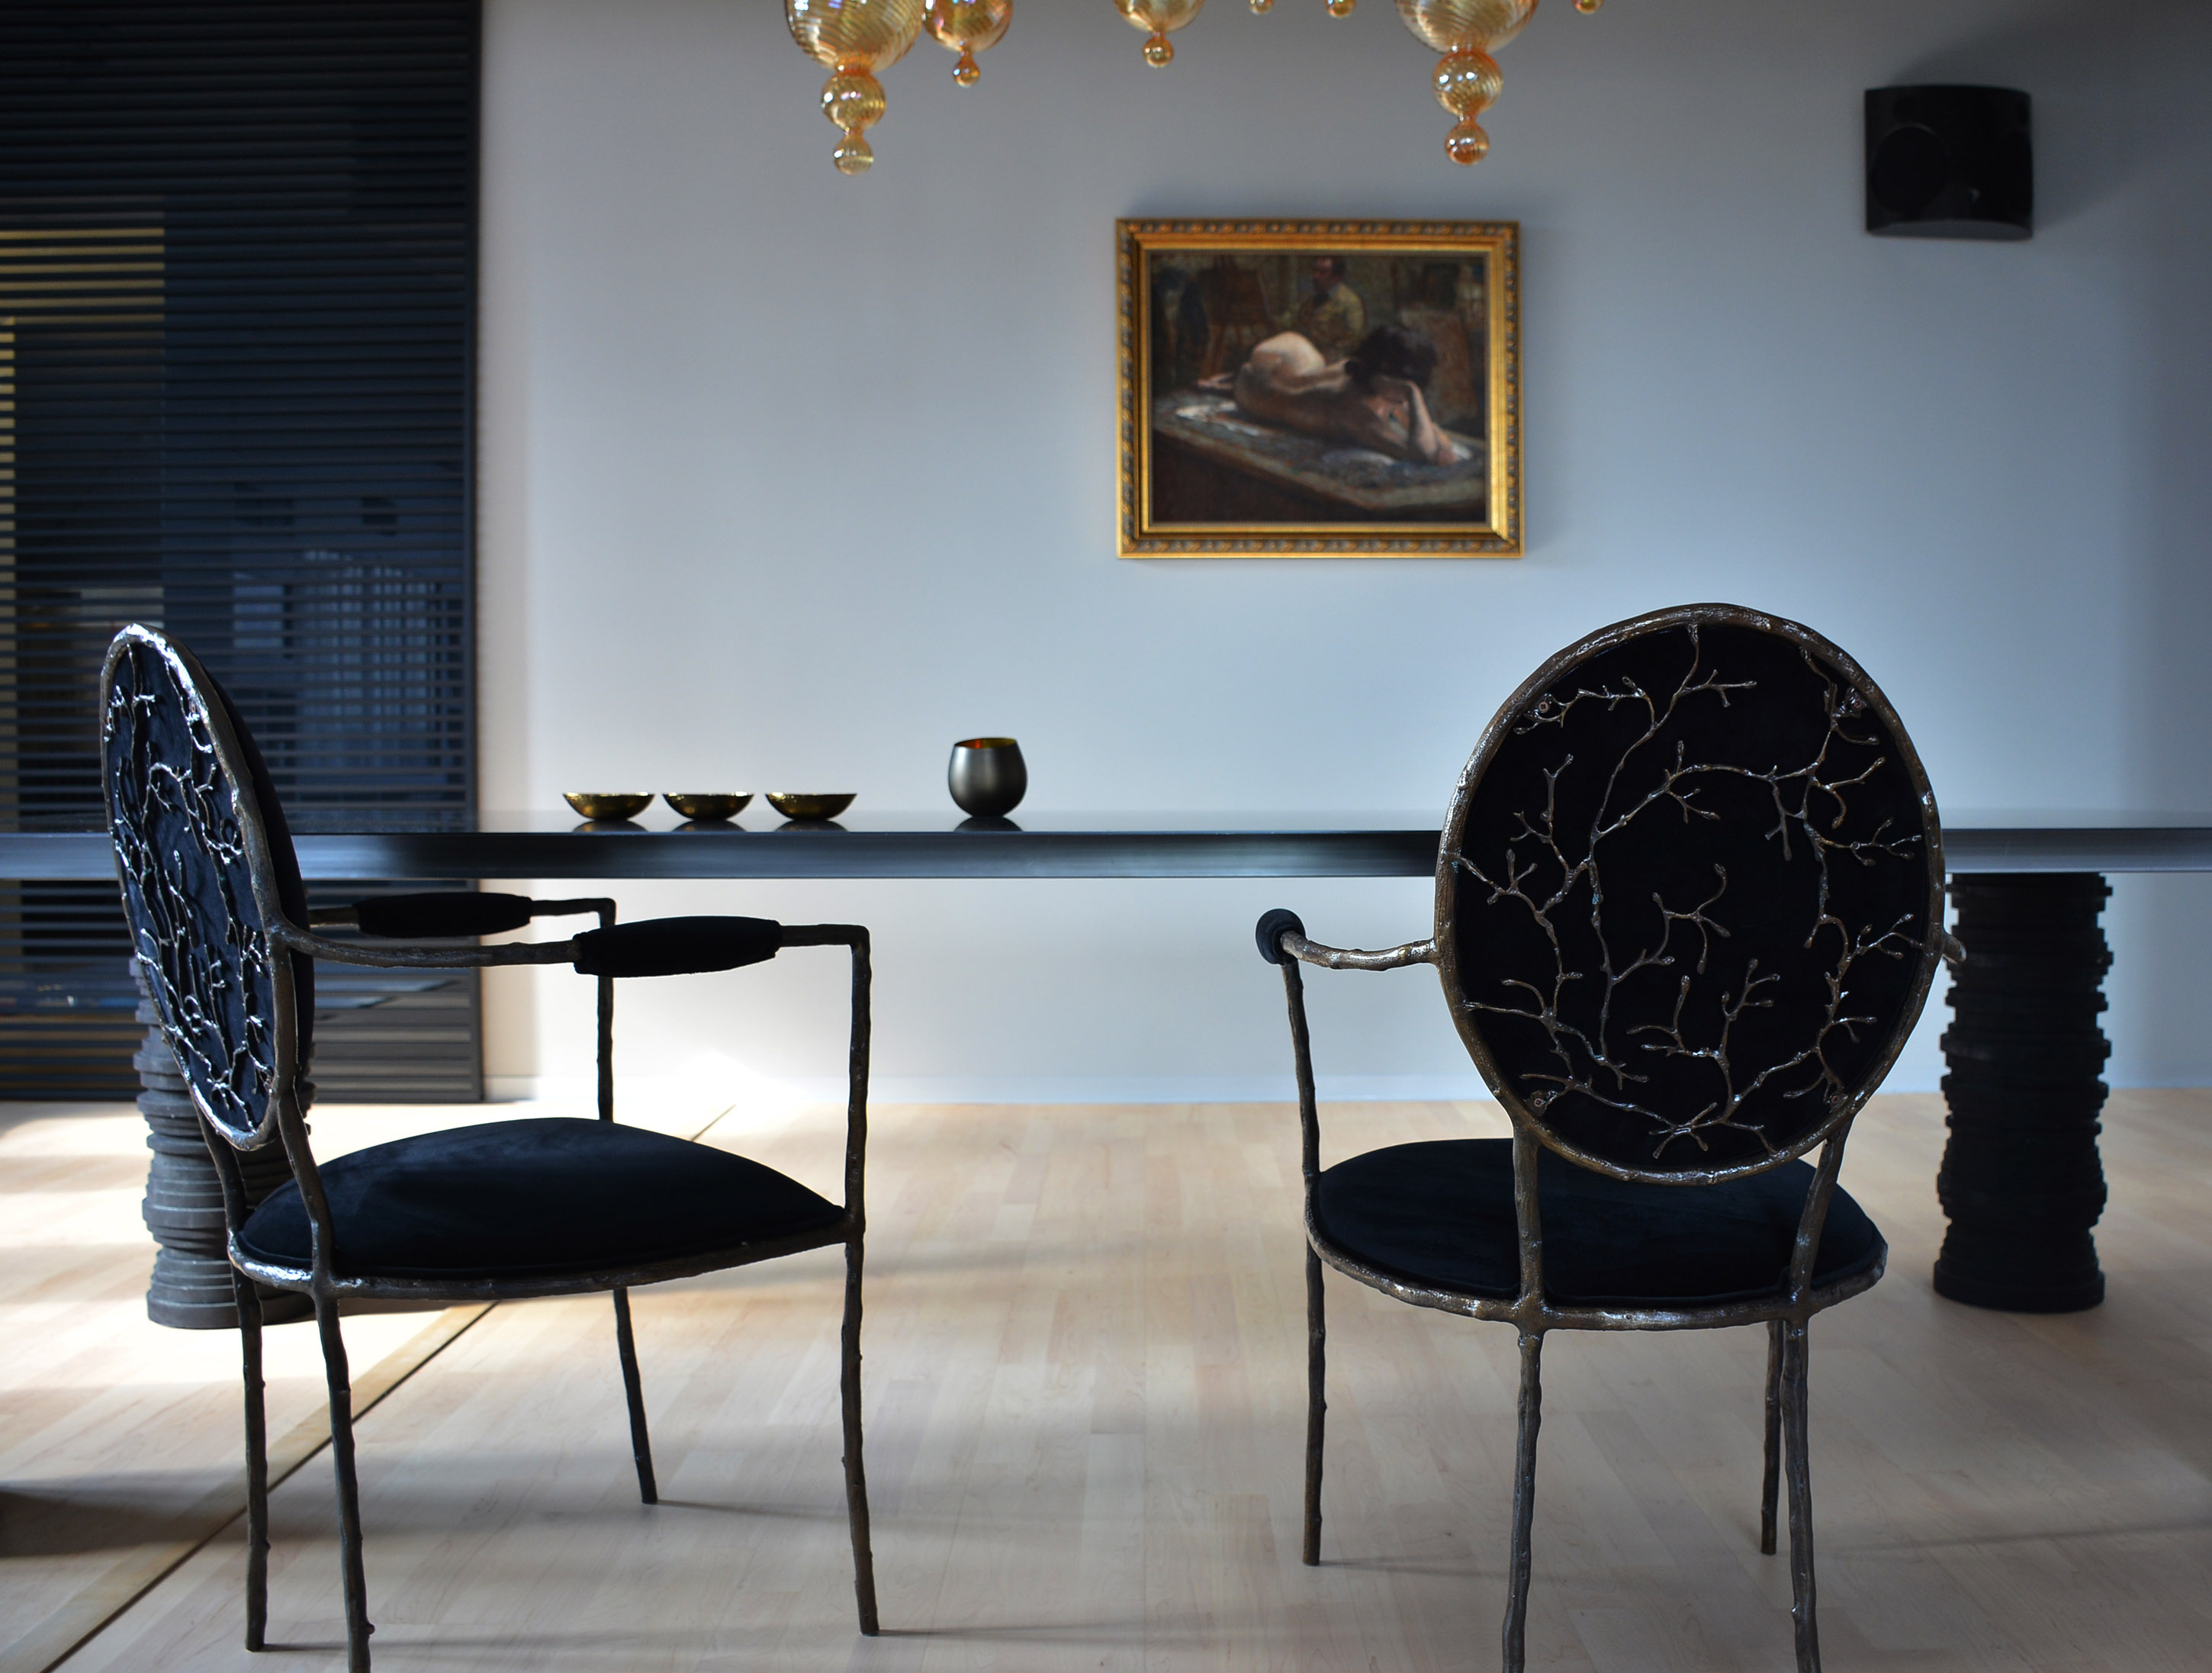 Luxury Design Brand Koket Launches Impressive Chandelier Collection luxury design Luxury Design Brand Koket Launches Impressive Chandelier Collection Luxury Design Brand Koket Launches the Most Impressive Chandelier Collection 4